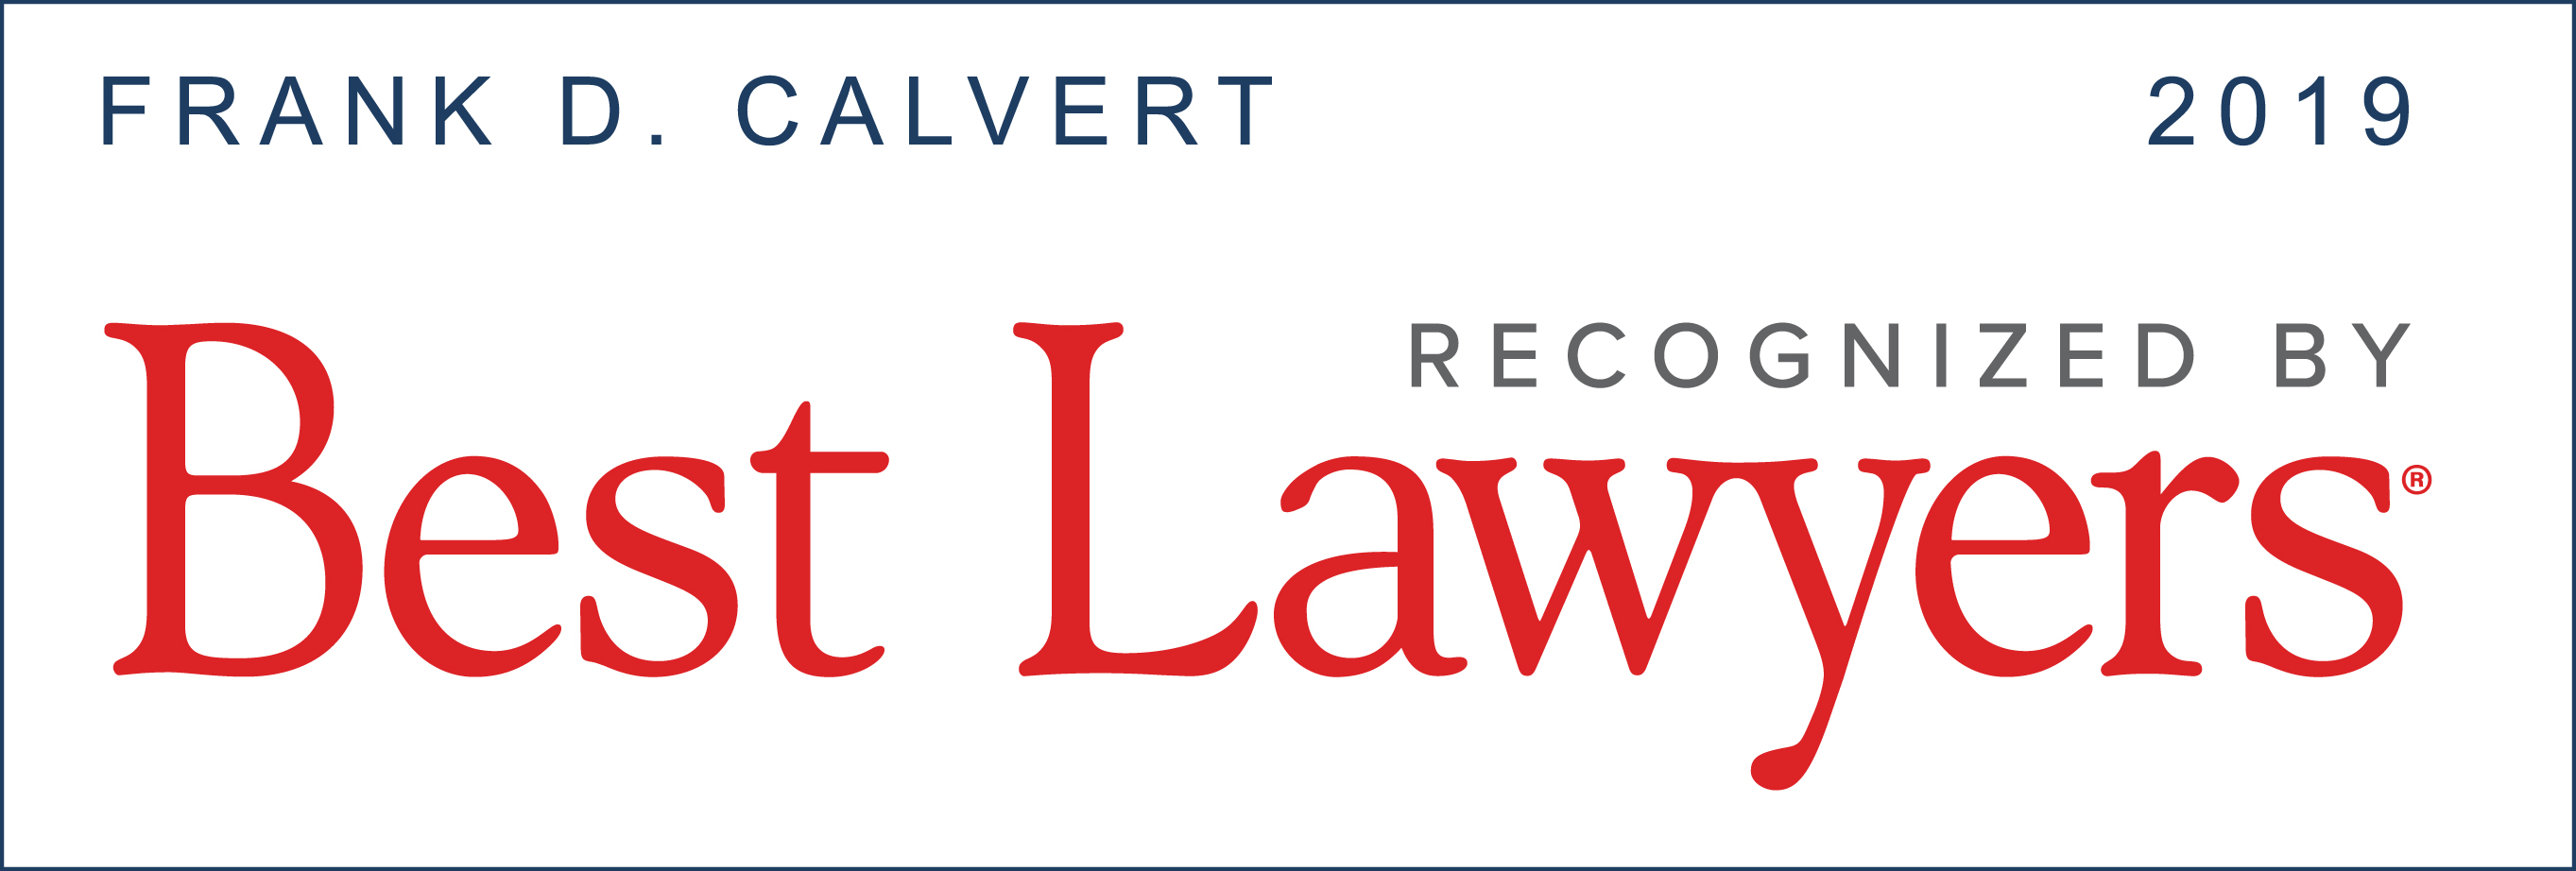 U.S.News & World Report - Best Lawyers 2019